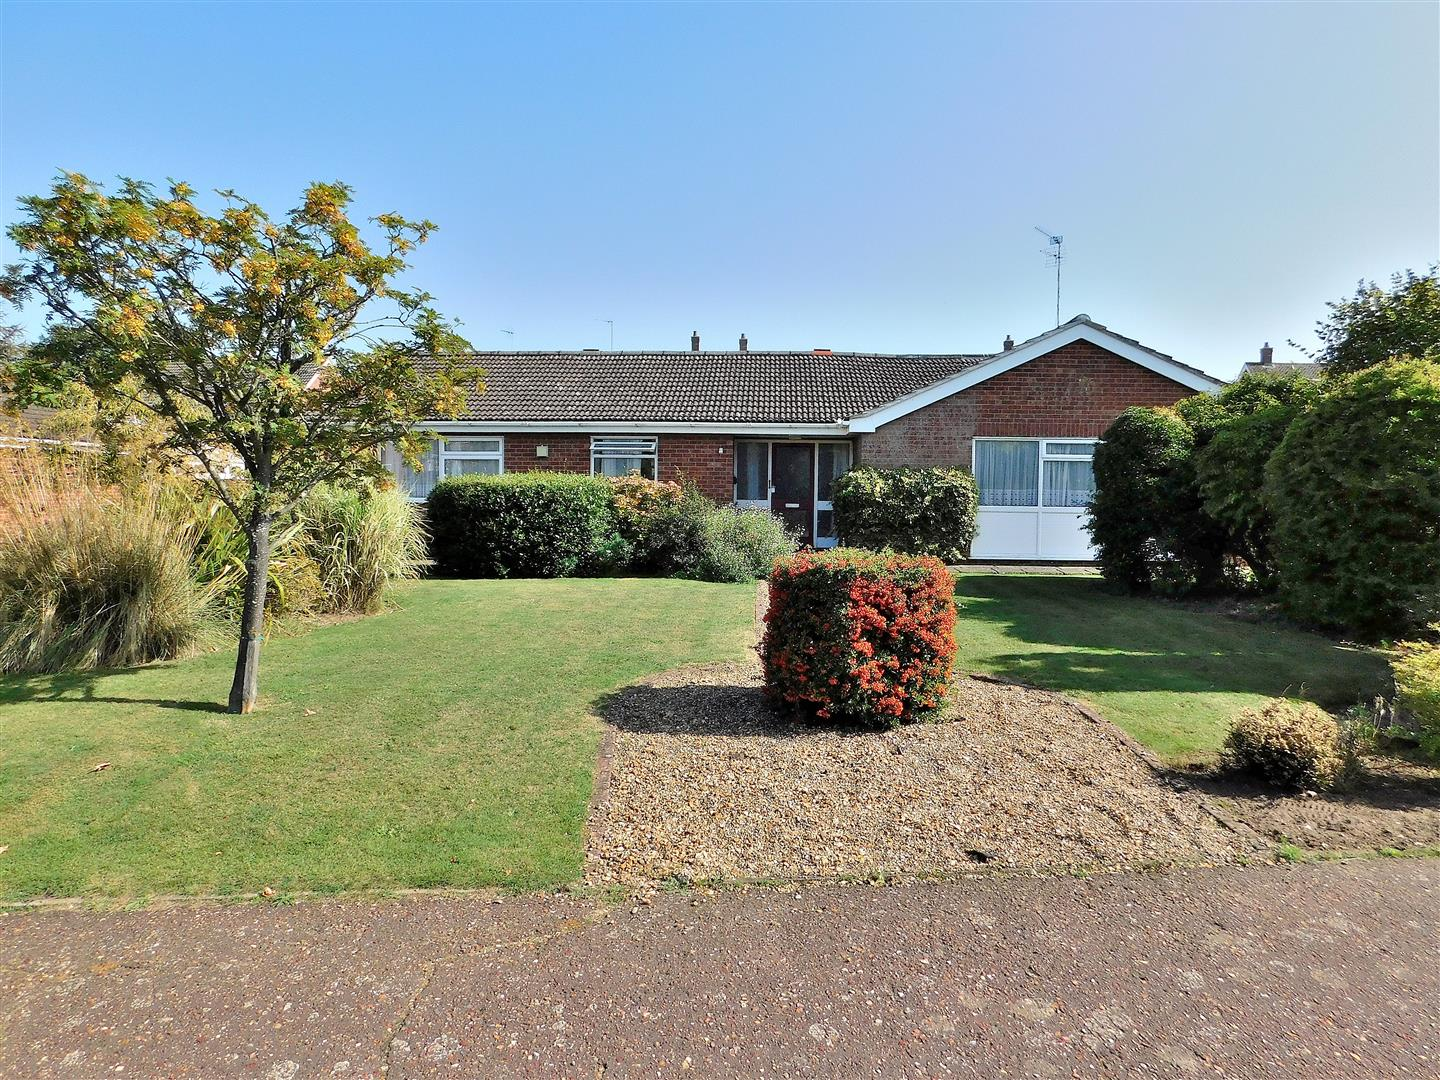 3 bed detached bungalow for sale in King's Lynn, PE30 3JS 0